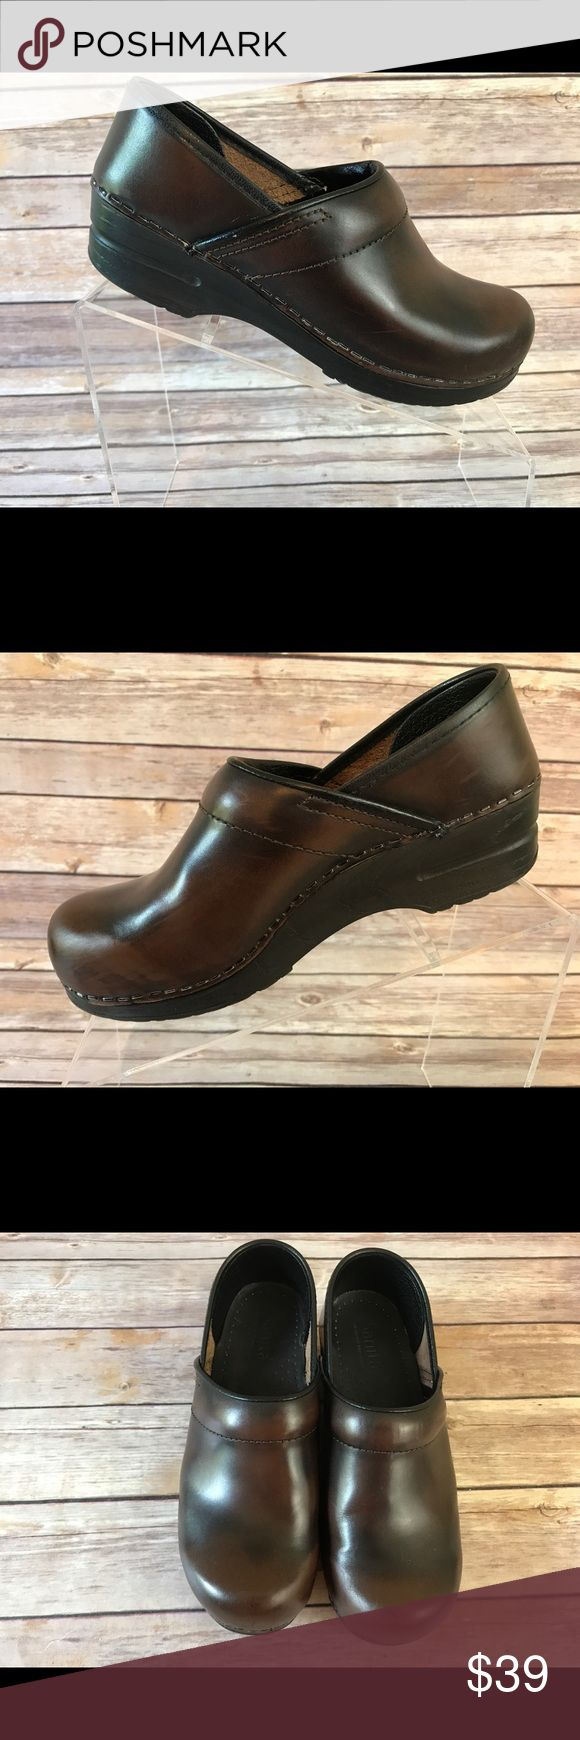 Sanita Womens Professional Leather Clog  EU 37 Sanita Womens Professional Leather Clog  Brown Cabrio.   EU 37 US size 6.5/7.  Condition: Good Pre-Owned Condition. See pics. Sanita Shoes Mules & Clogs